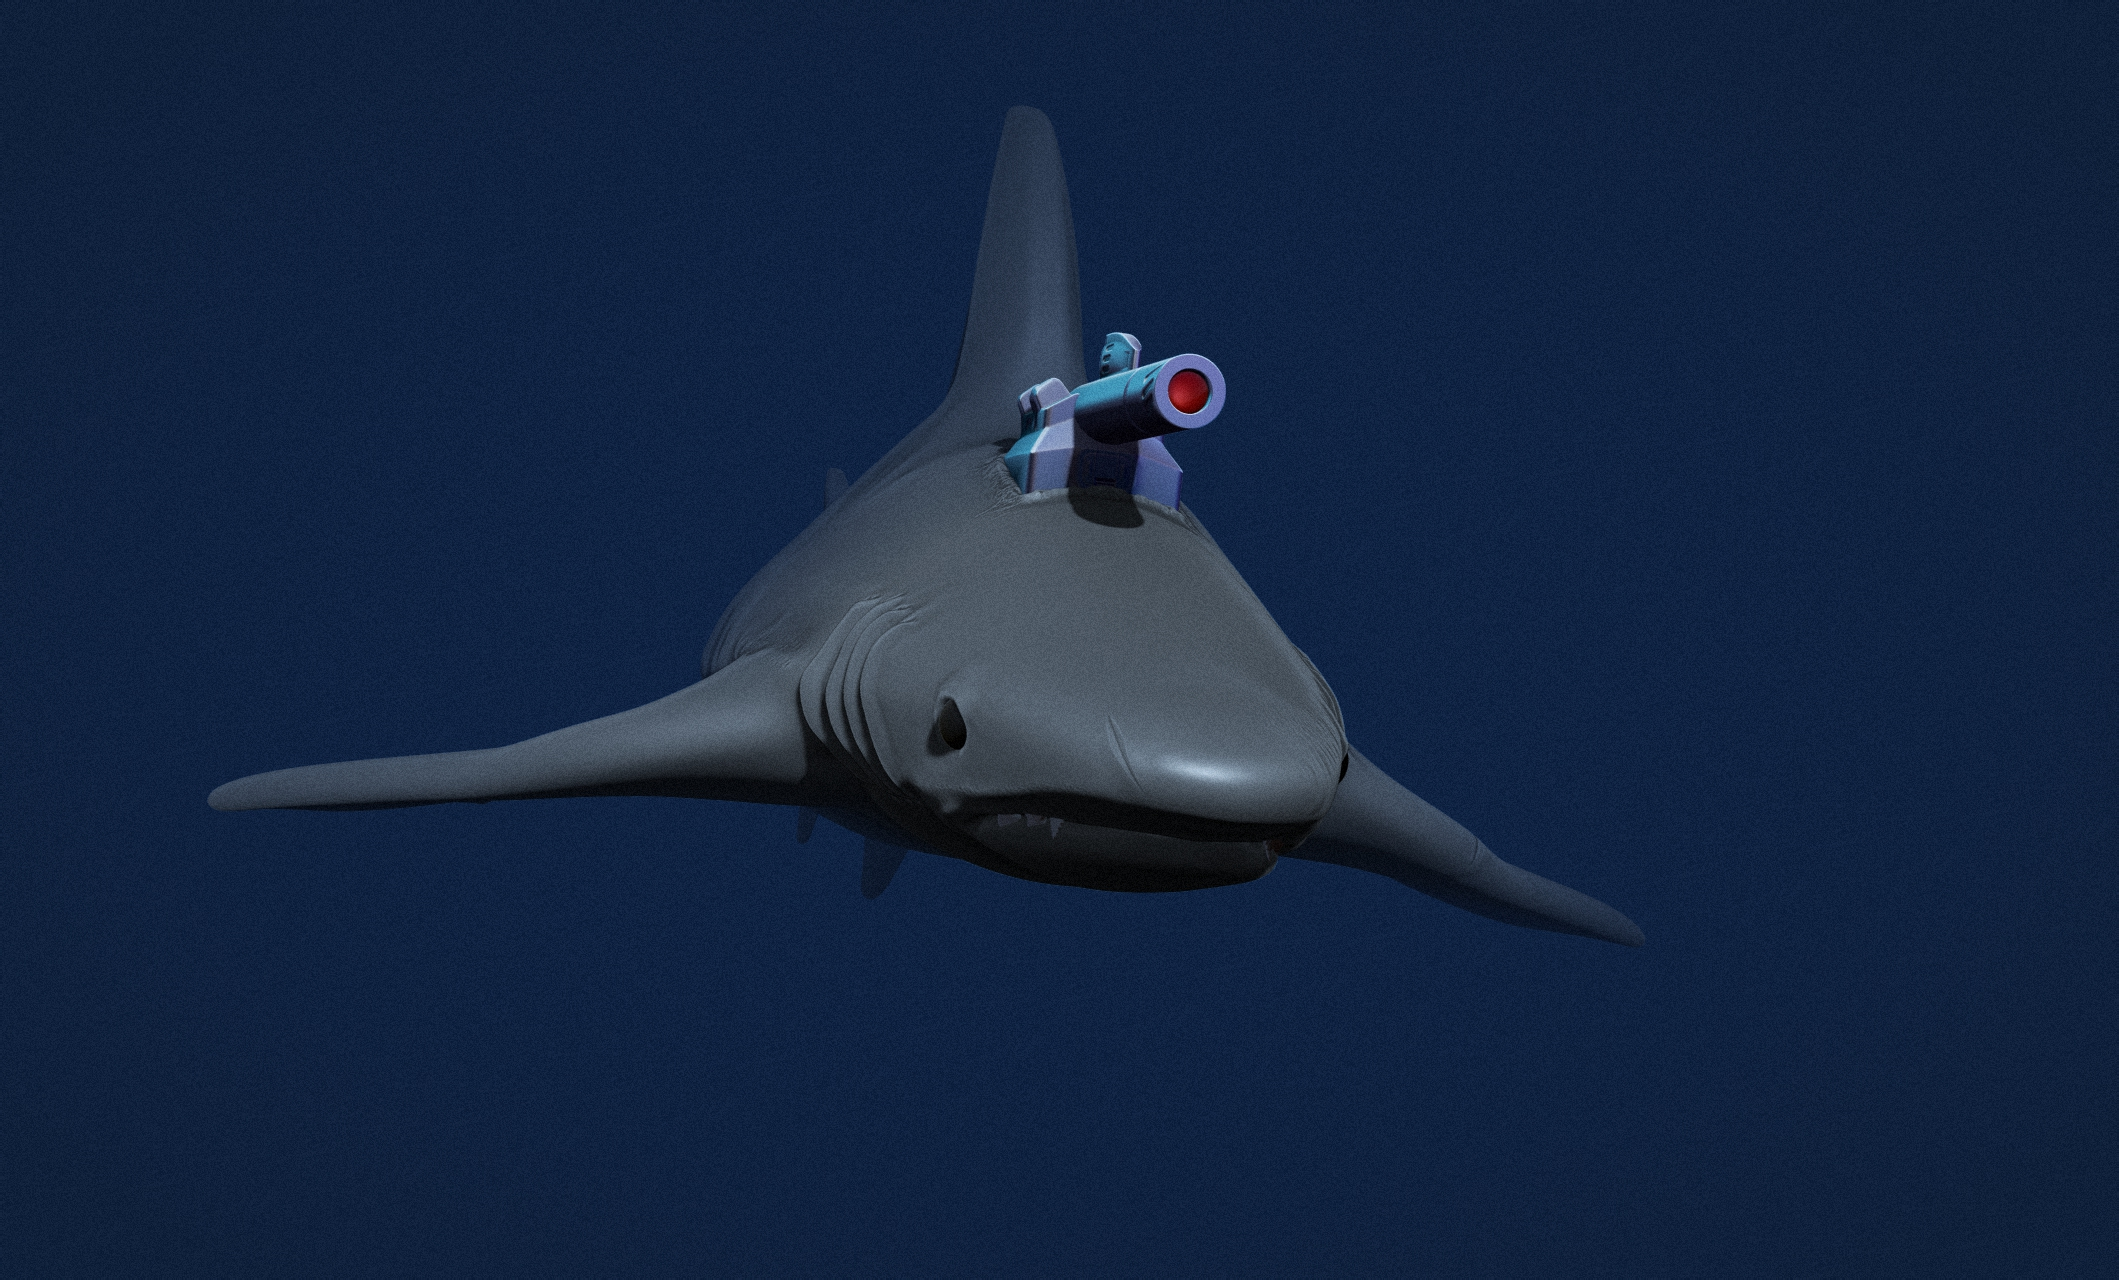 Shark with Laser